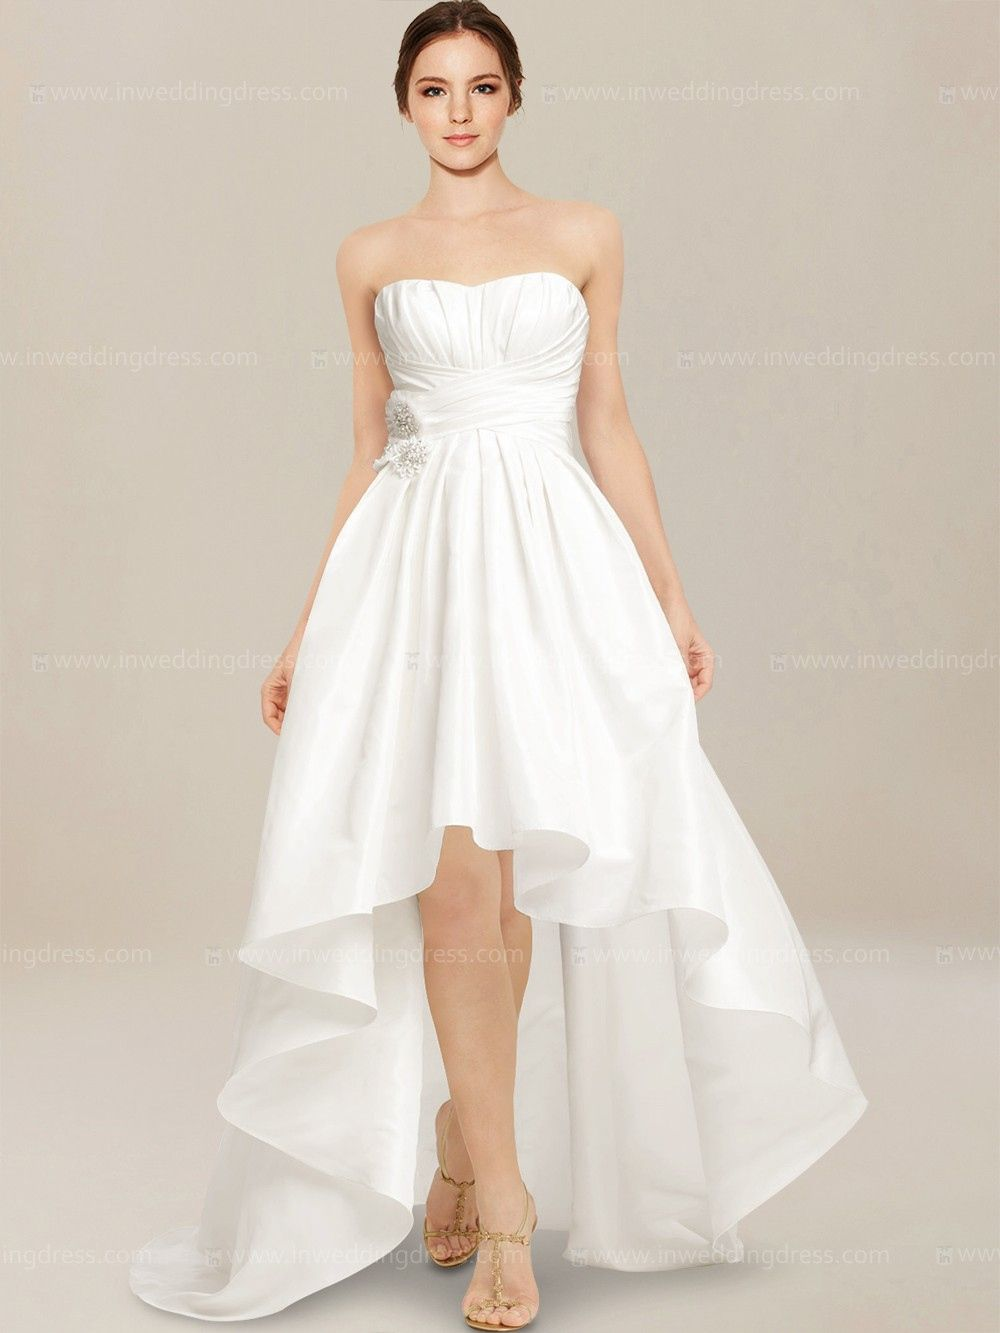 Wedding dress for older bride  Wedding Dresses for Beach  Informal Wedding Dresses for Older